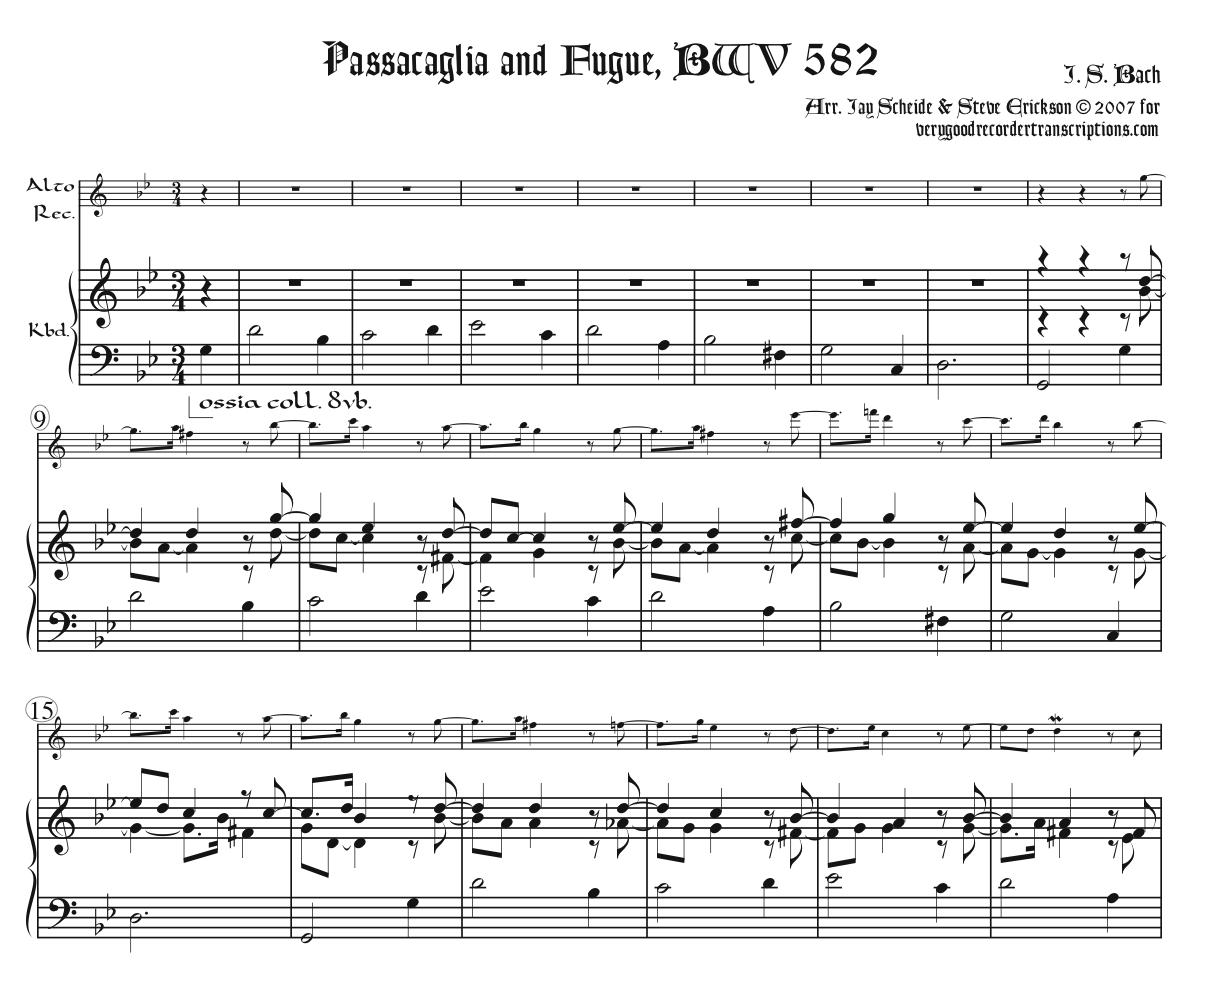 Passacaglia and Fugue, BWV 582